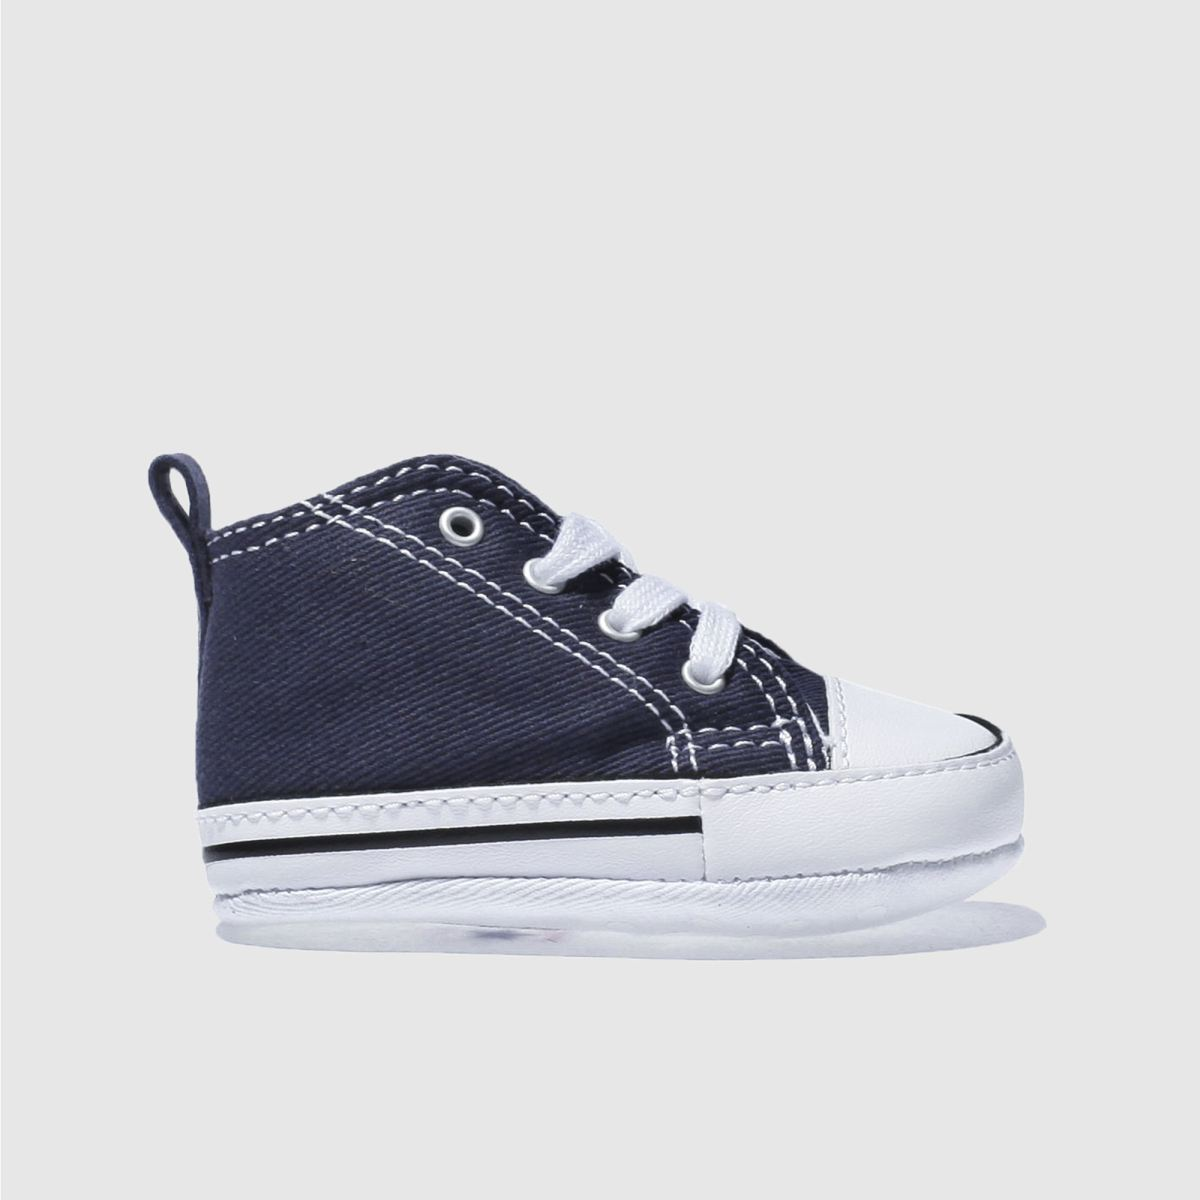 Converse Navy 1st Star Ii Crib Shoes Baby